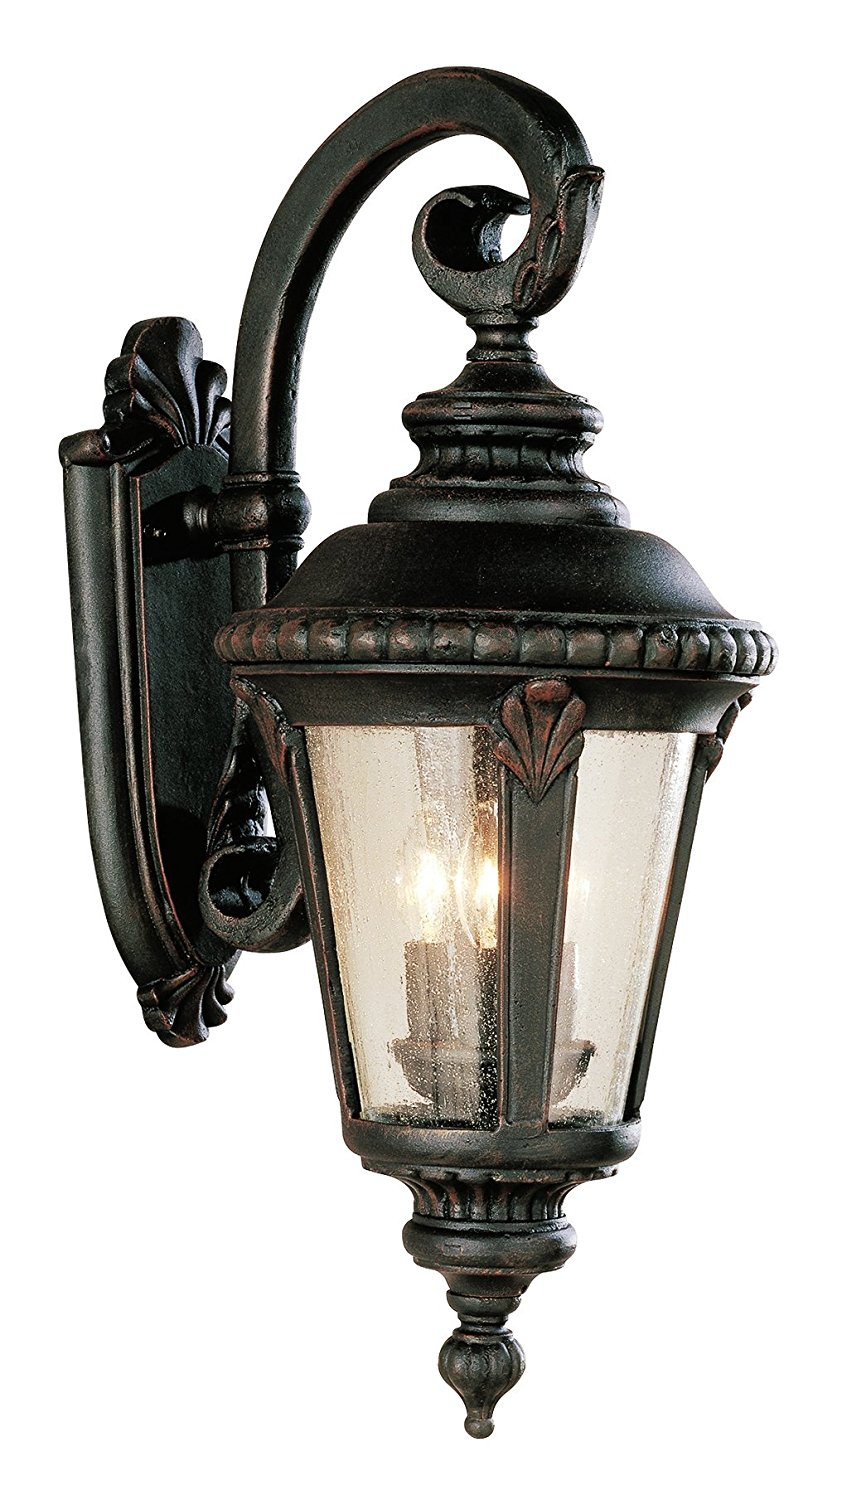 10 facts about outdoor wall mount light fixtures warisan for Outdoor yard light fixtures